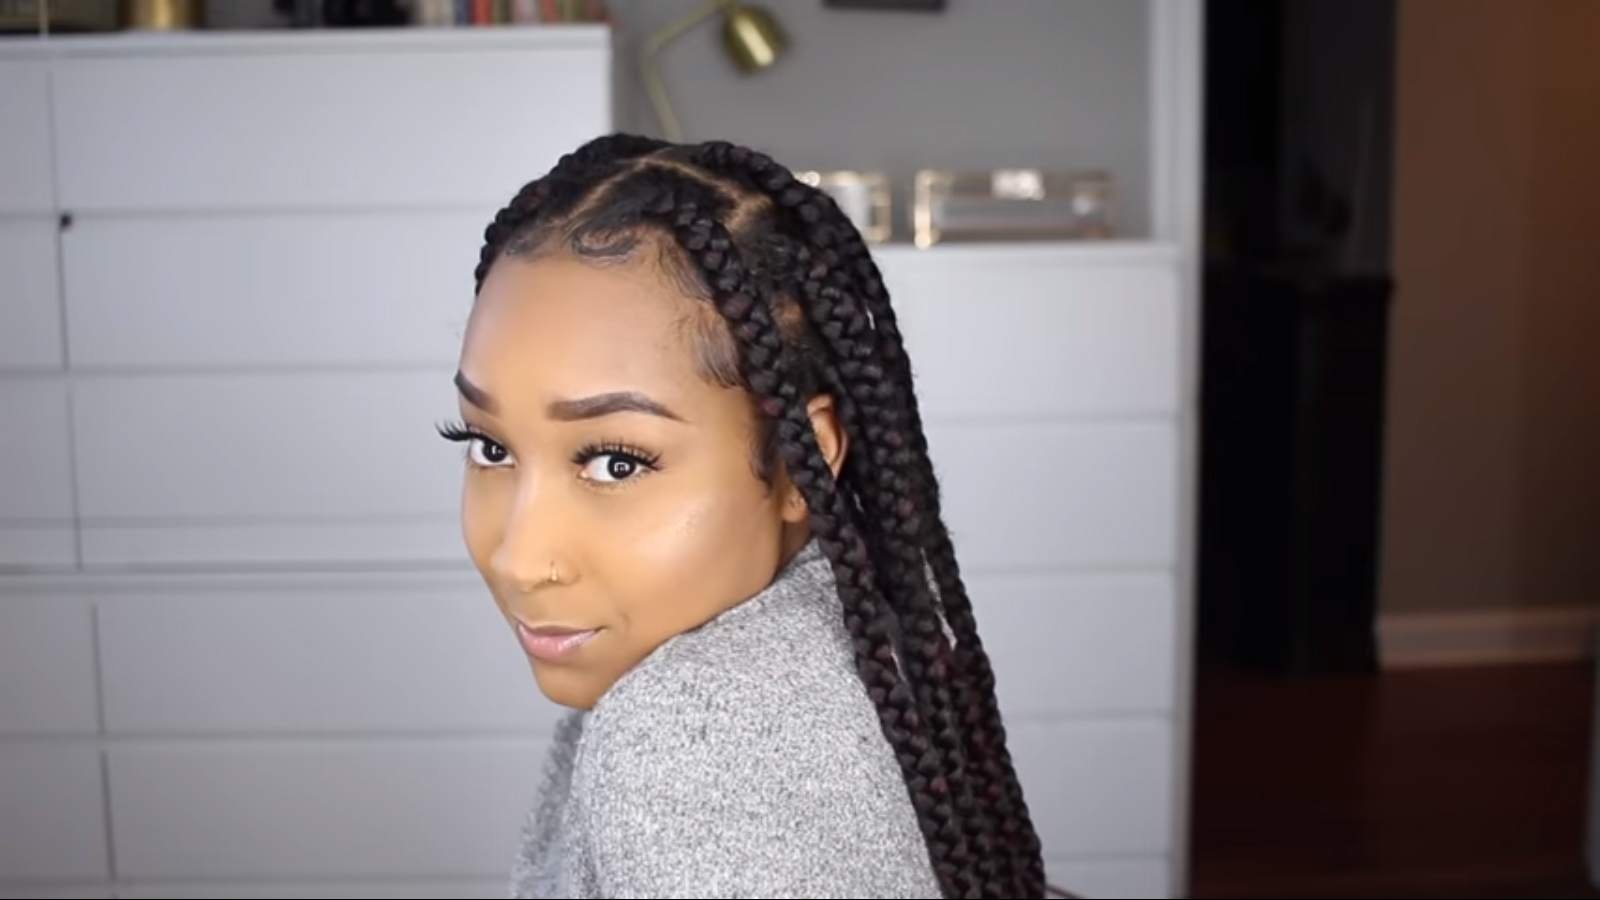 Two Simple Ways To Make Jumbo Knotless Braids For Beginners African American Hairstyle Videos Aahv Knotless braids are single extension braids where the client's hair is braided first and extension hair is added to the braid, says foster. two simple ways to make jumbo knotless